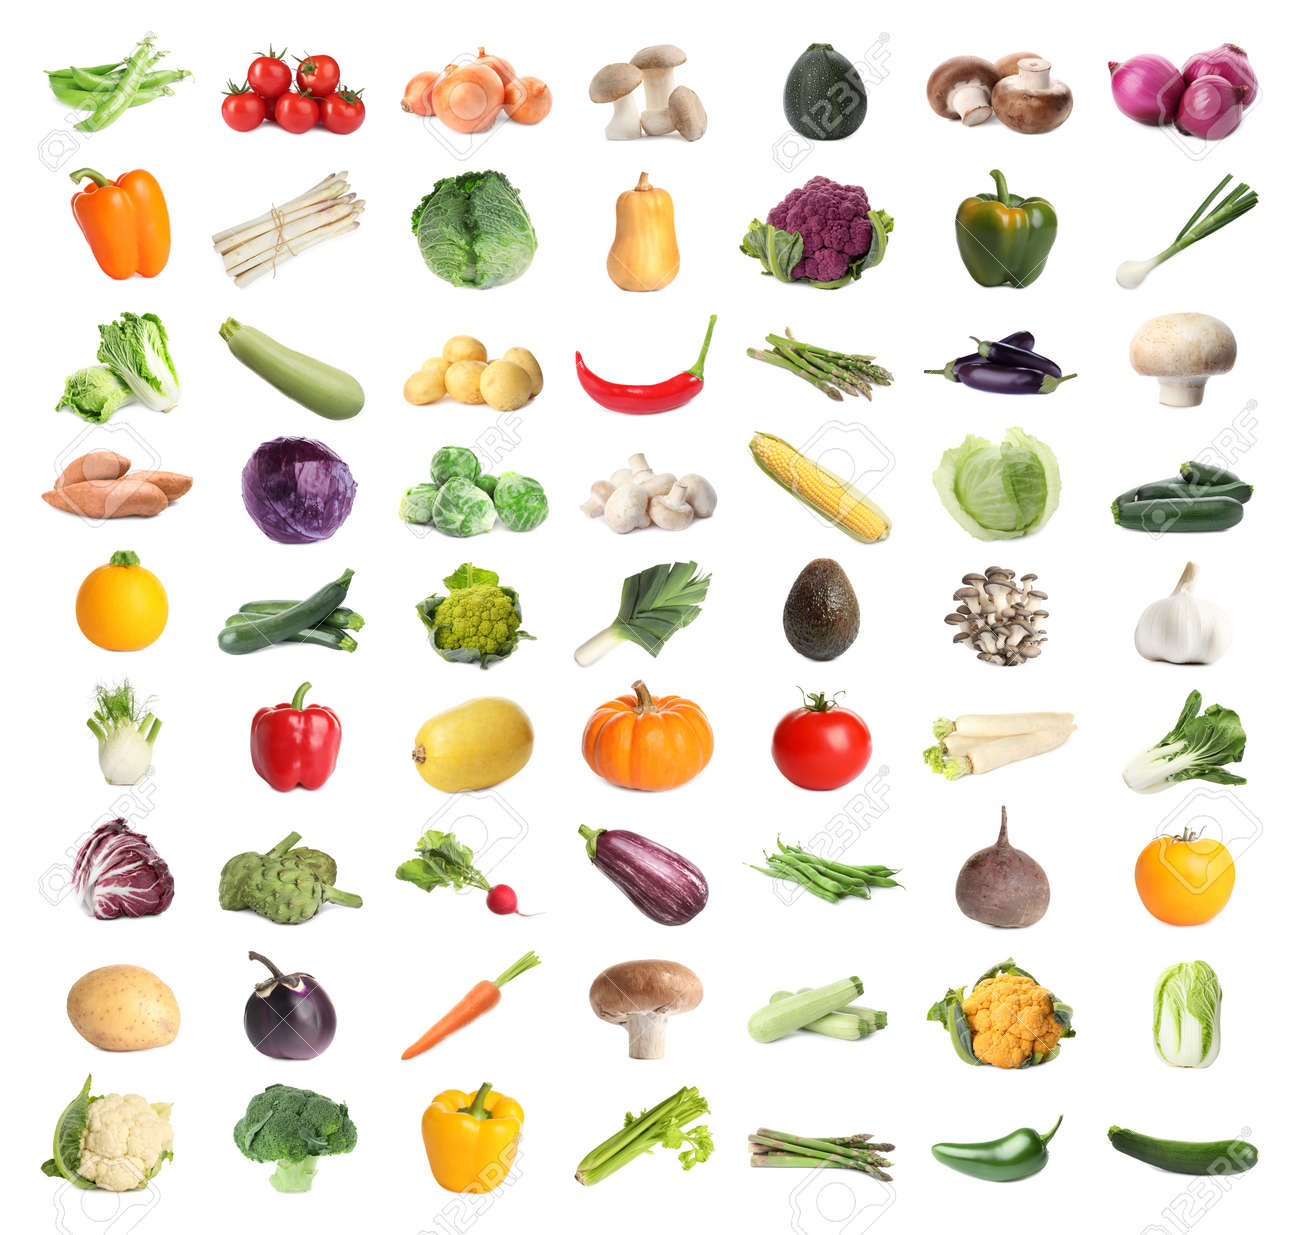 Collection of different fresh vegetables on white background - 169061510